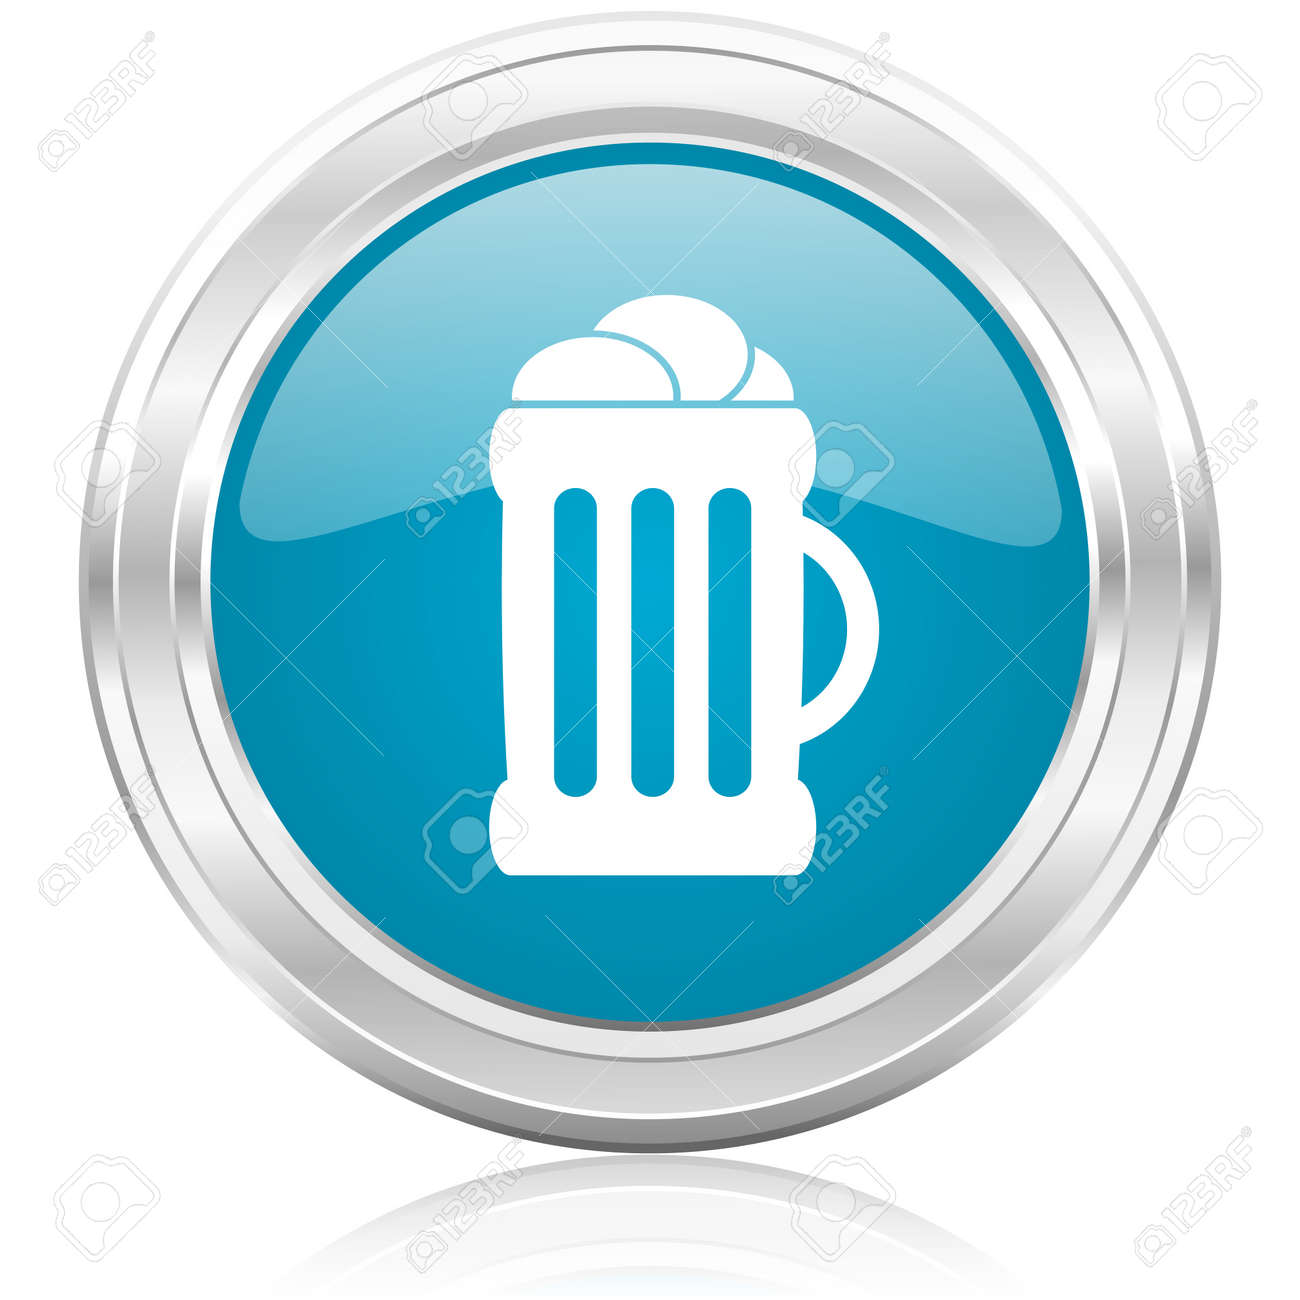 beer icon Stock Photo - 22586493